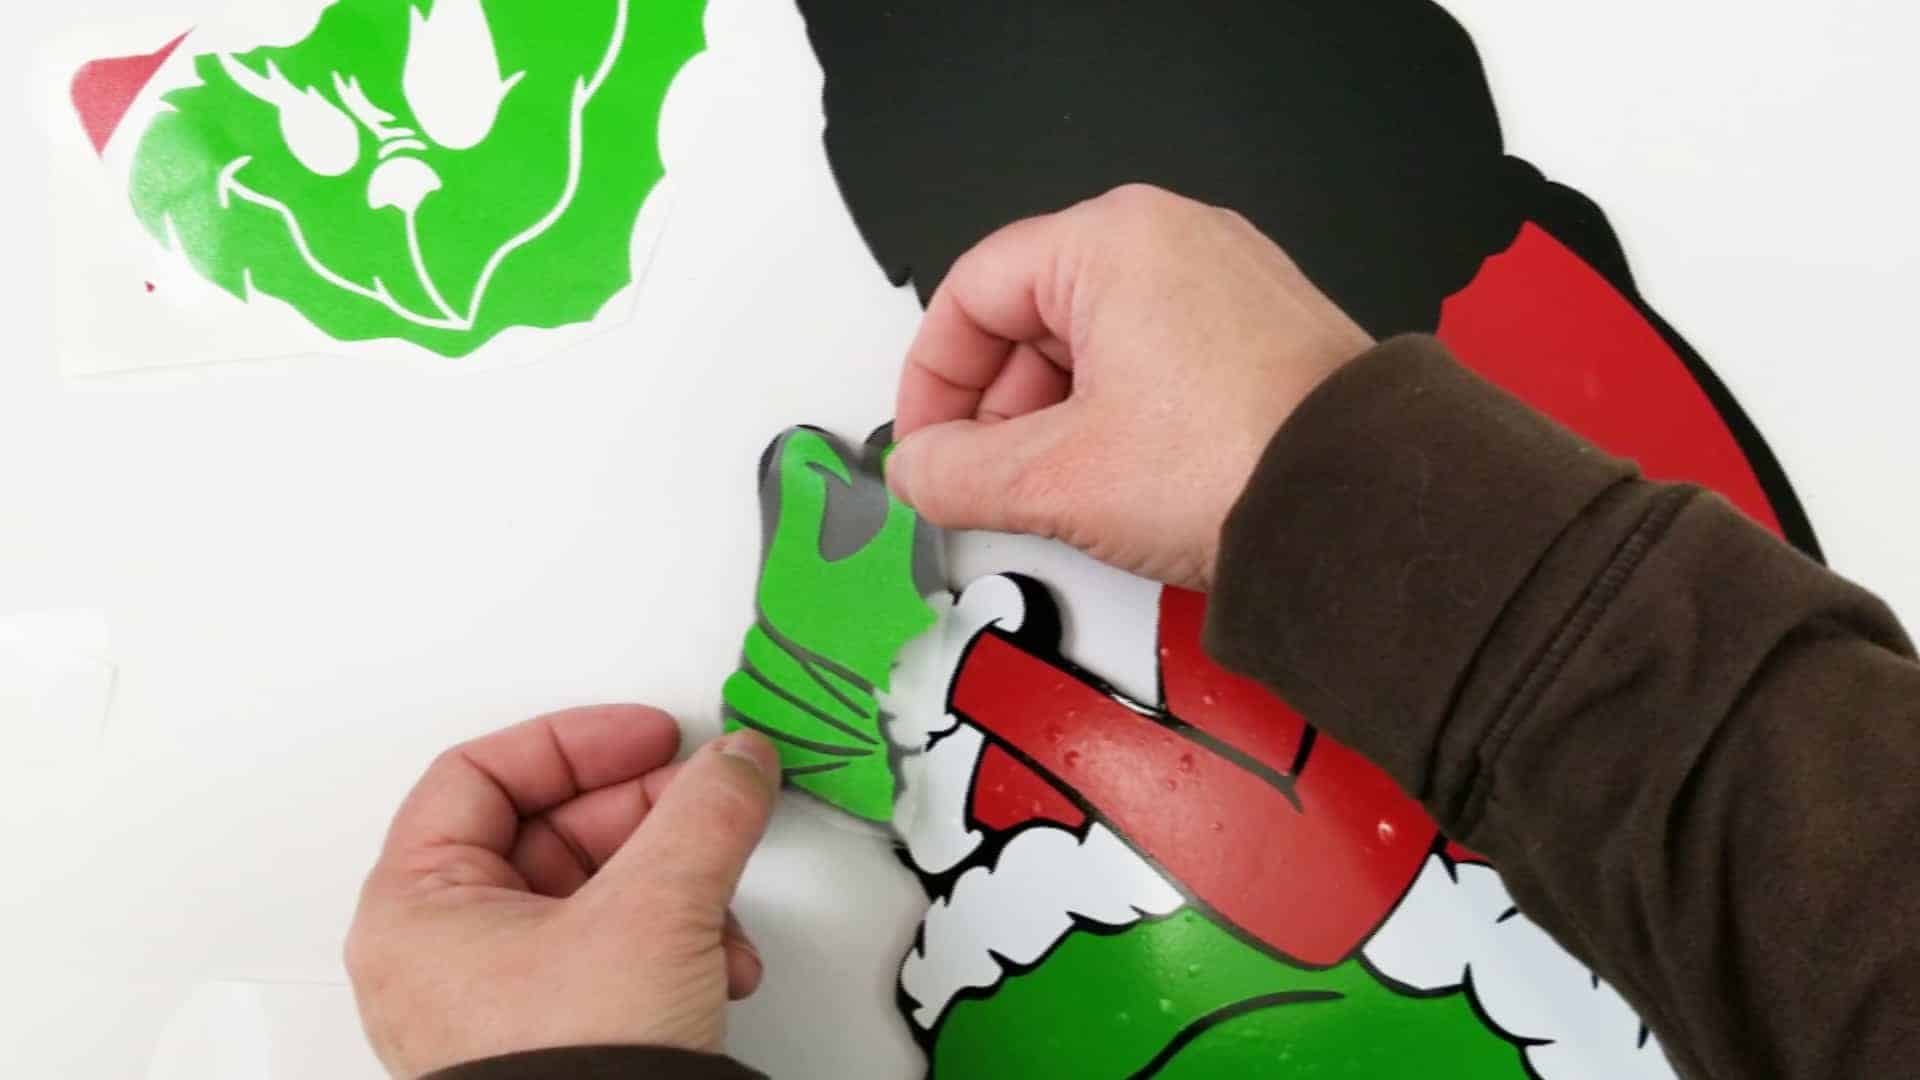 Adding red, white and green vinyl pieces to a black Grinch outline to complete the Grinch yard art